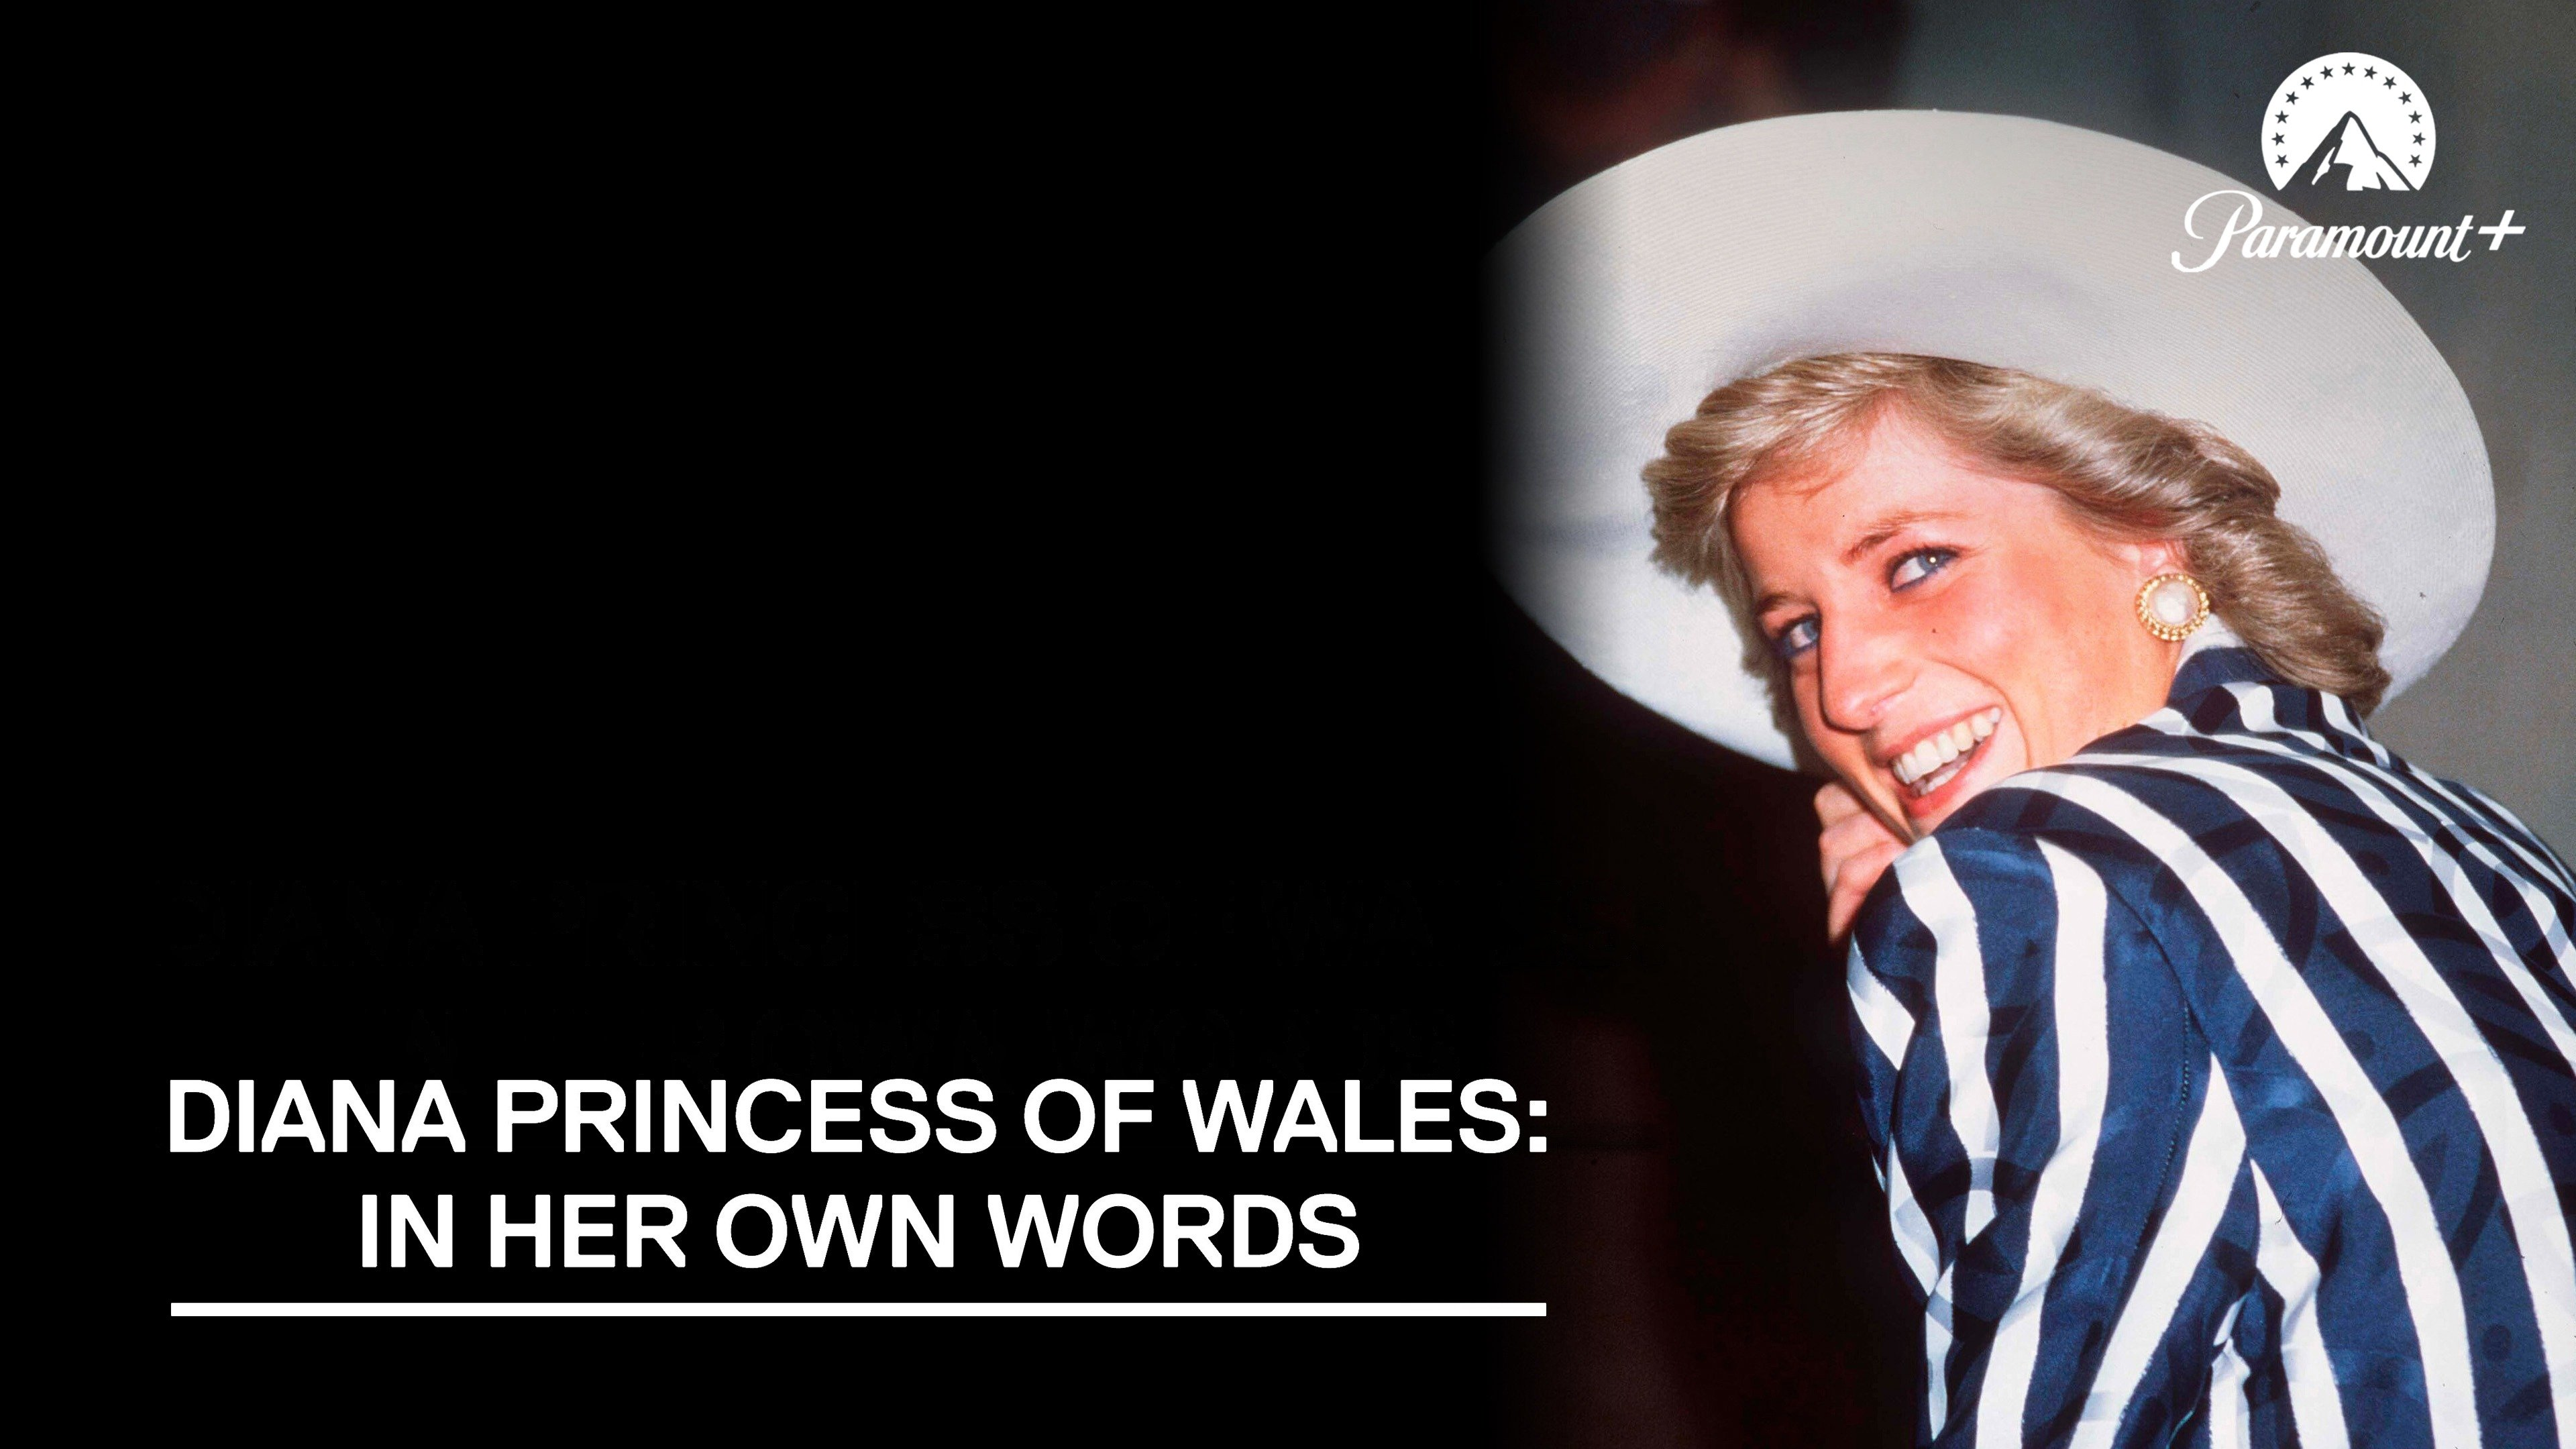 Diana - Princess of Wales: In Her Own Words